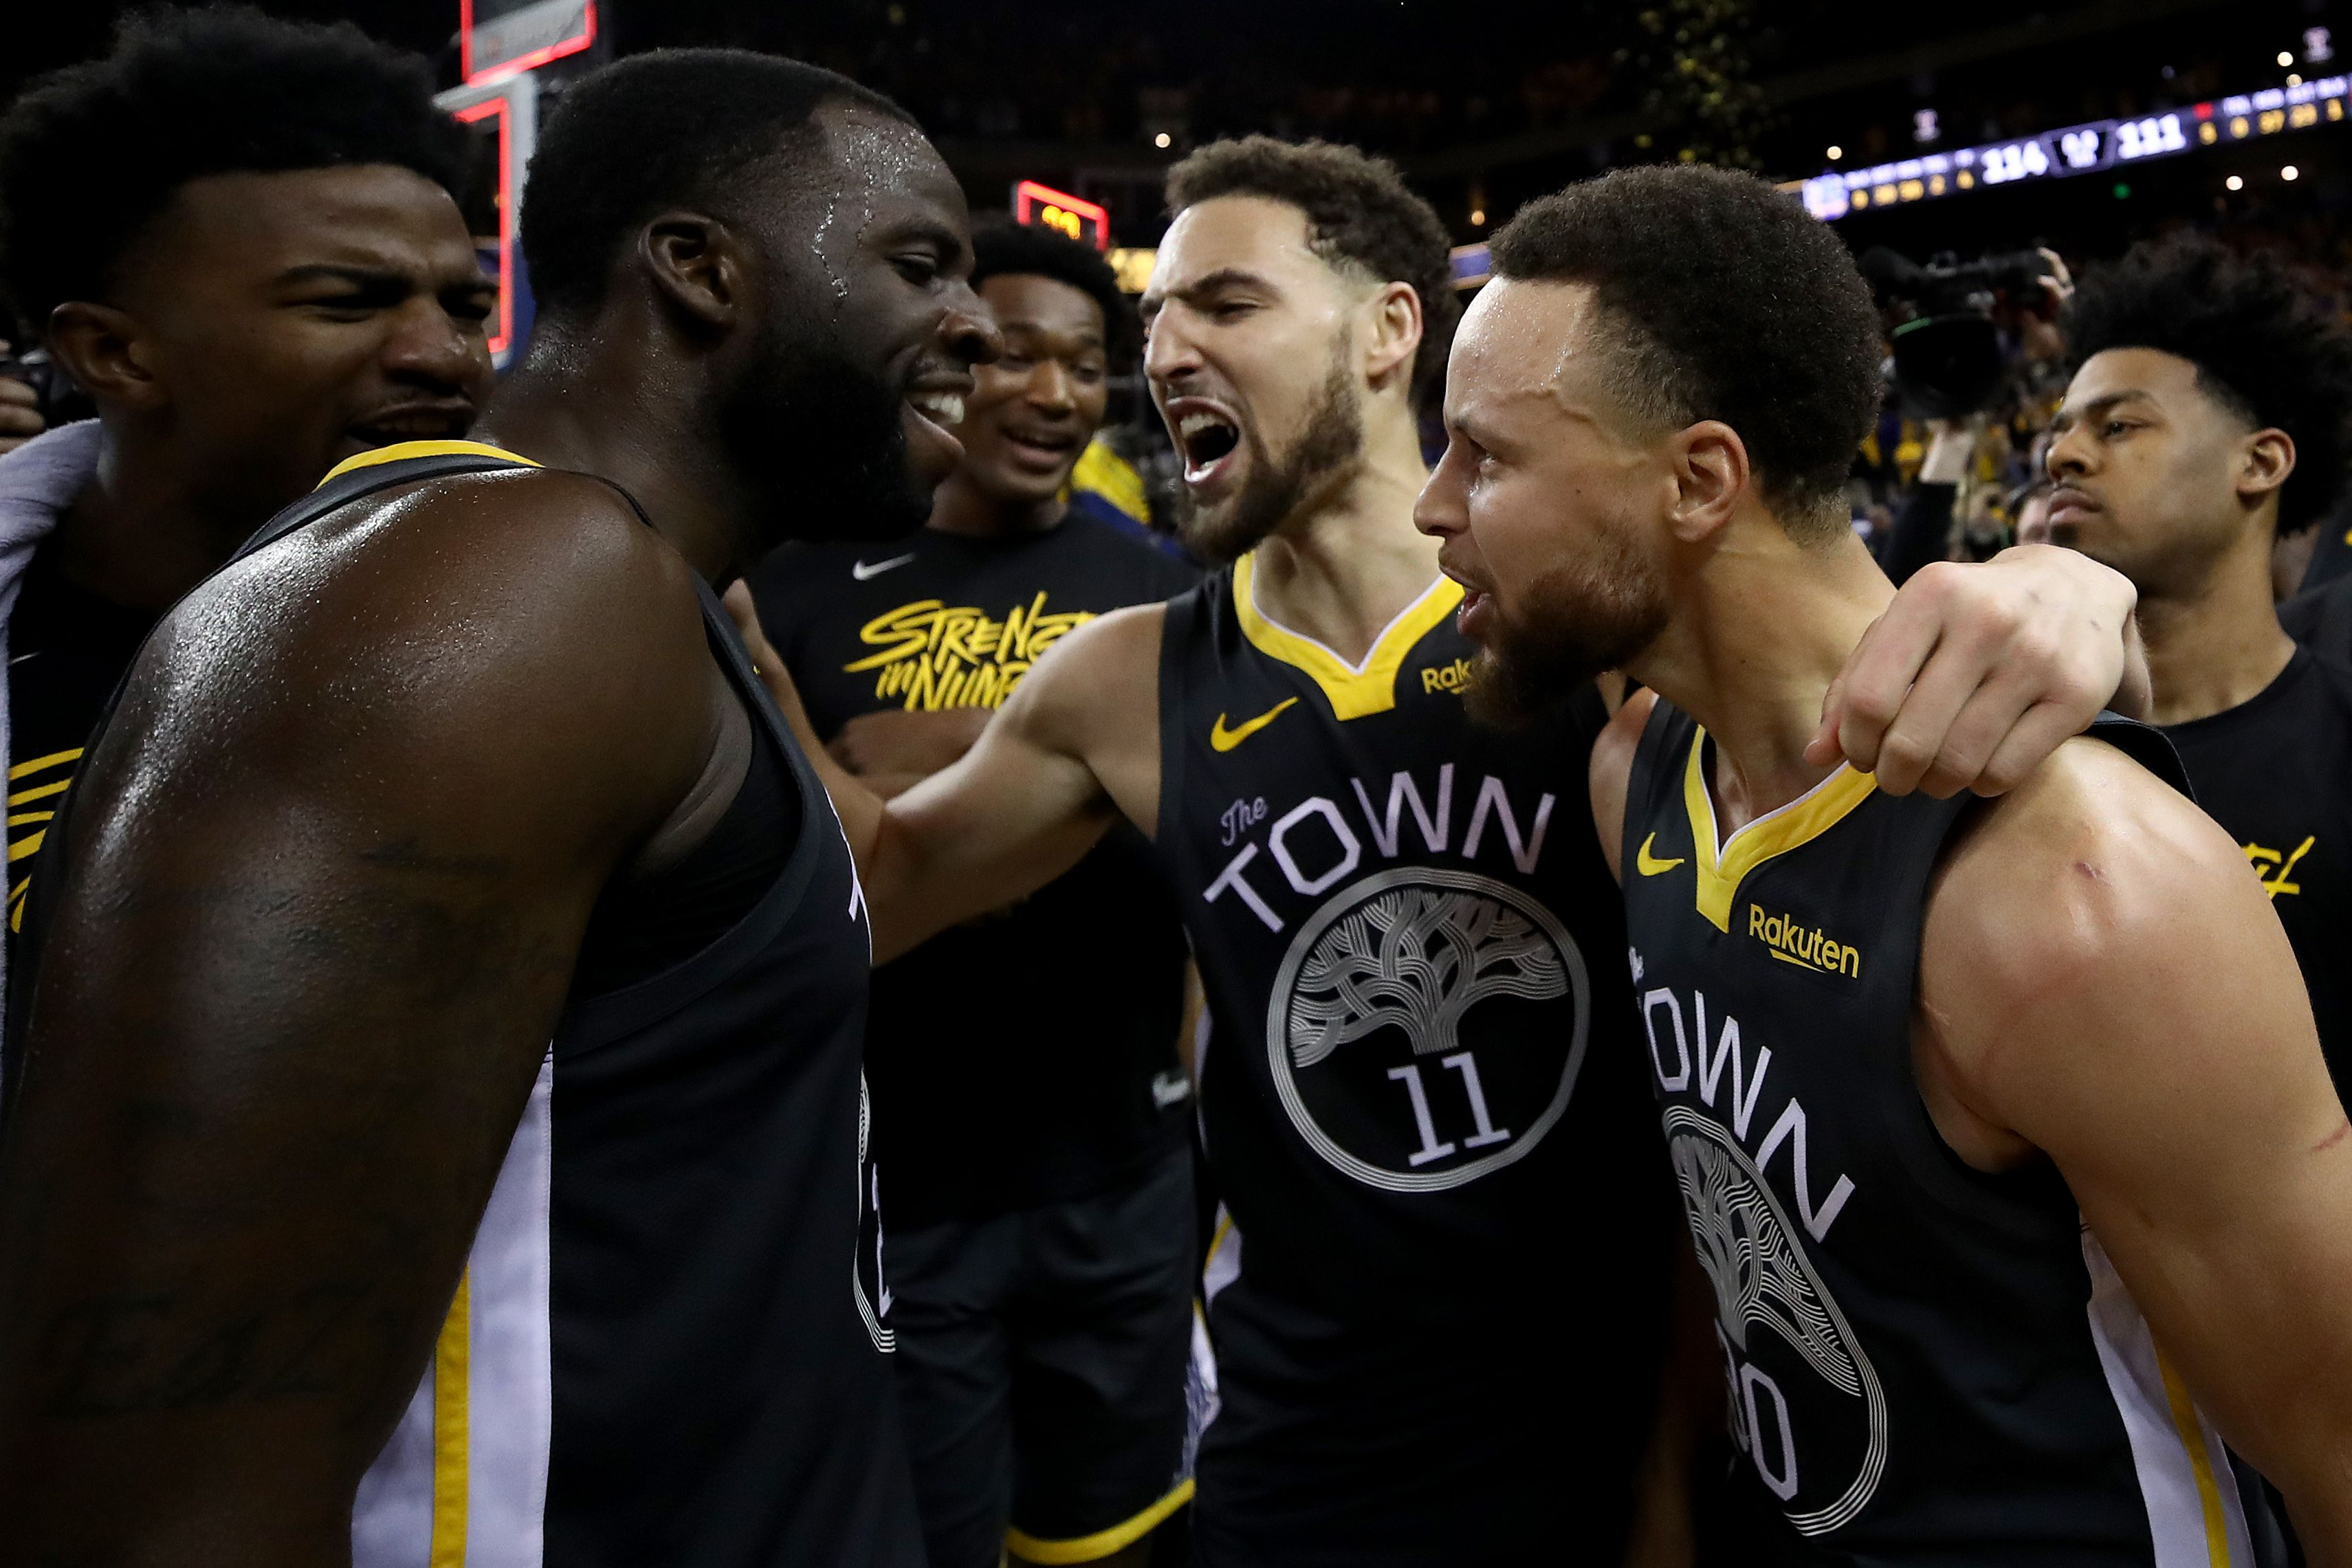 Stephen Curry, Klay Thompson, and Draymond Green celebrating Warriors' victory